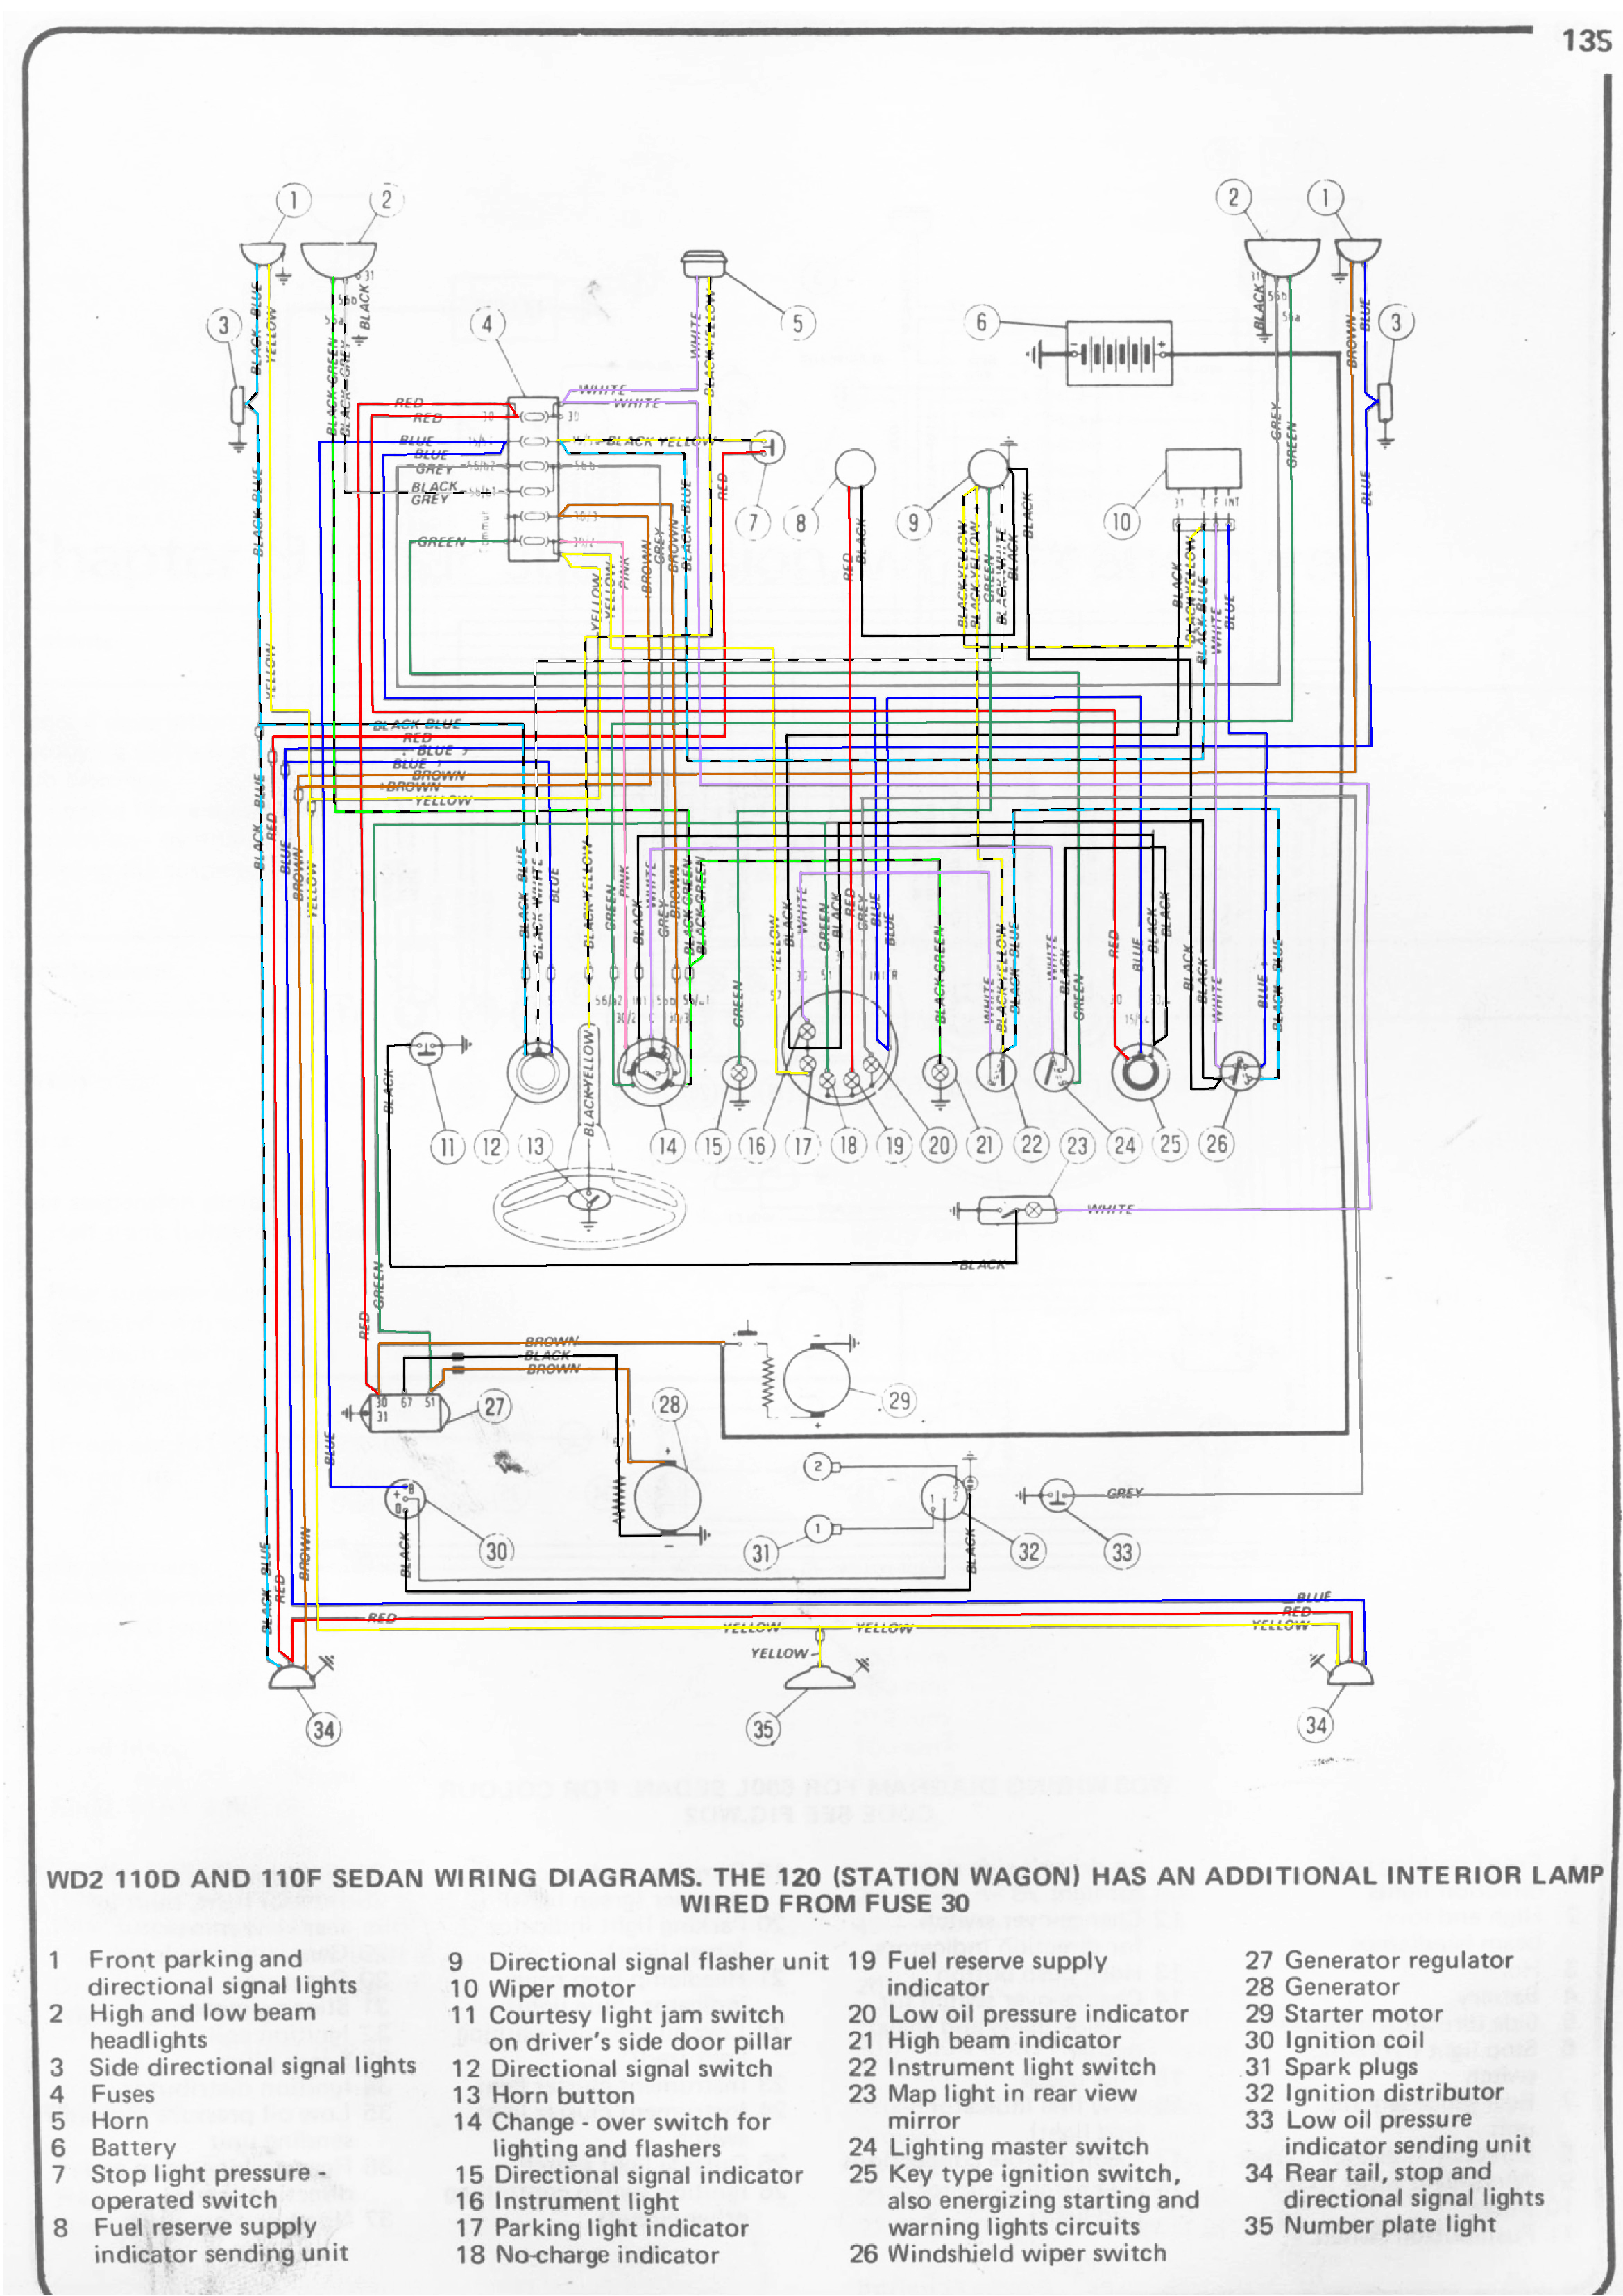 Fiat Car Manuals Wiring Diagrams Pdf Fault Codes Amc Ignition Module Diagram 500